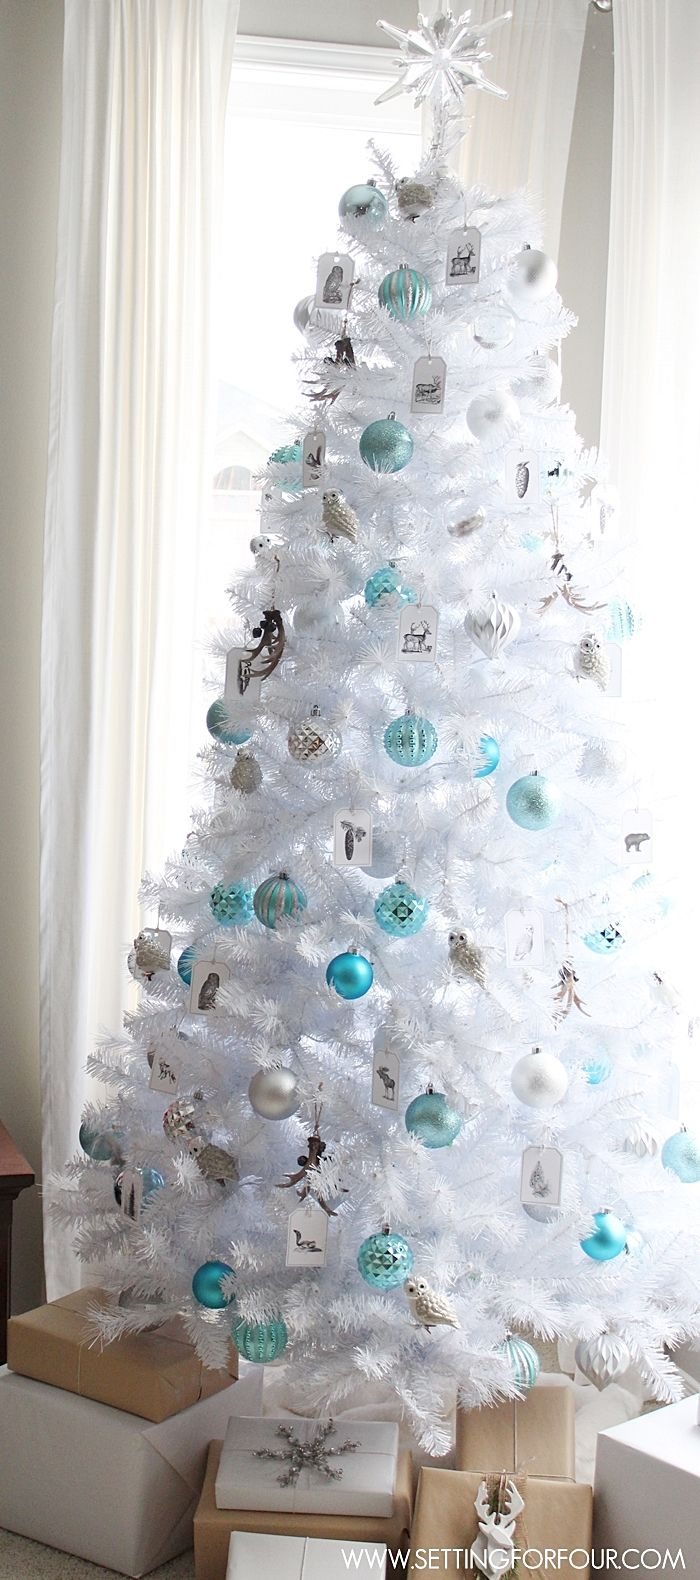 White christmas decorations for a tree - See How I Decorated My Winter Woodland Glam White Christmas Tree For The Holidays Diy